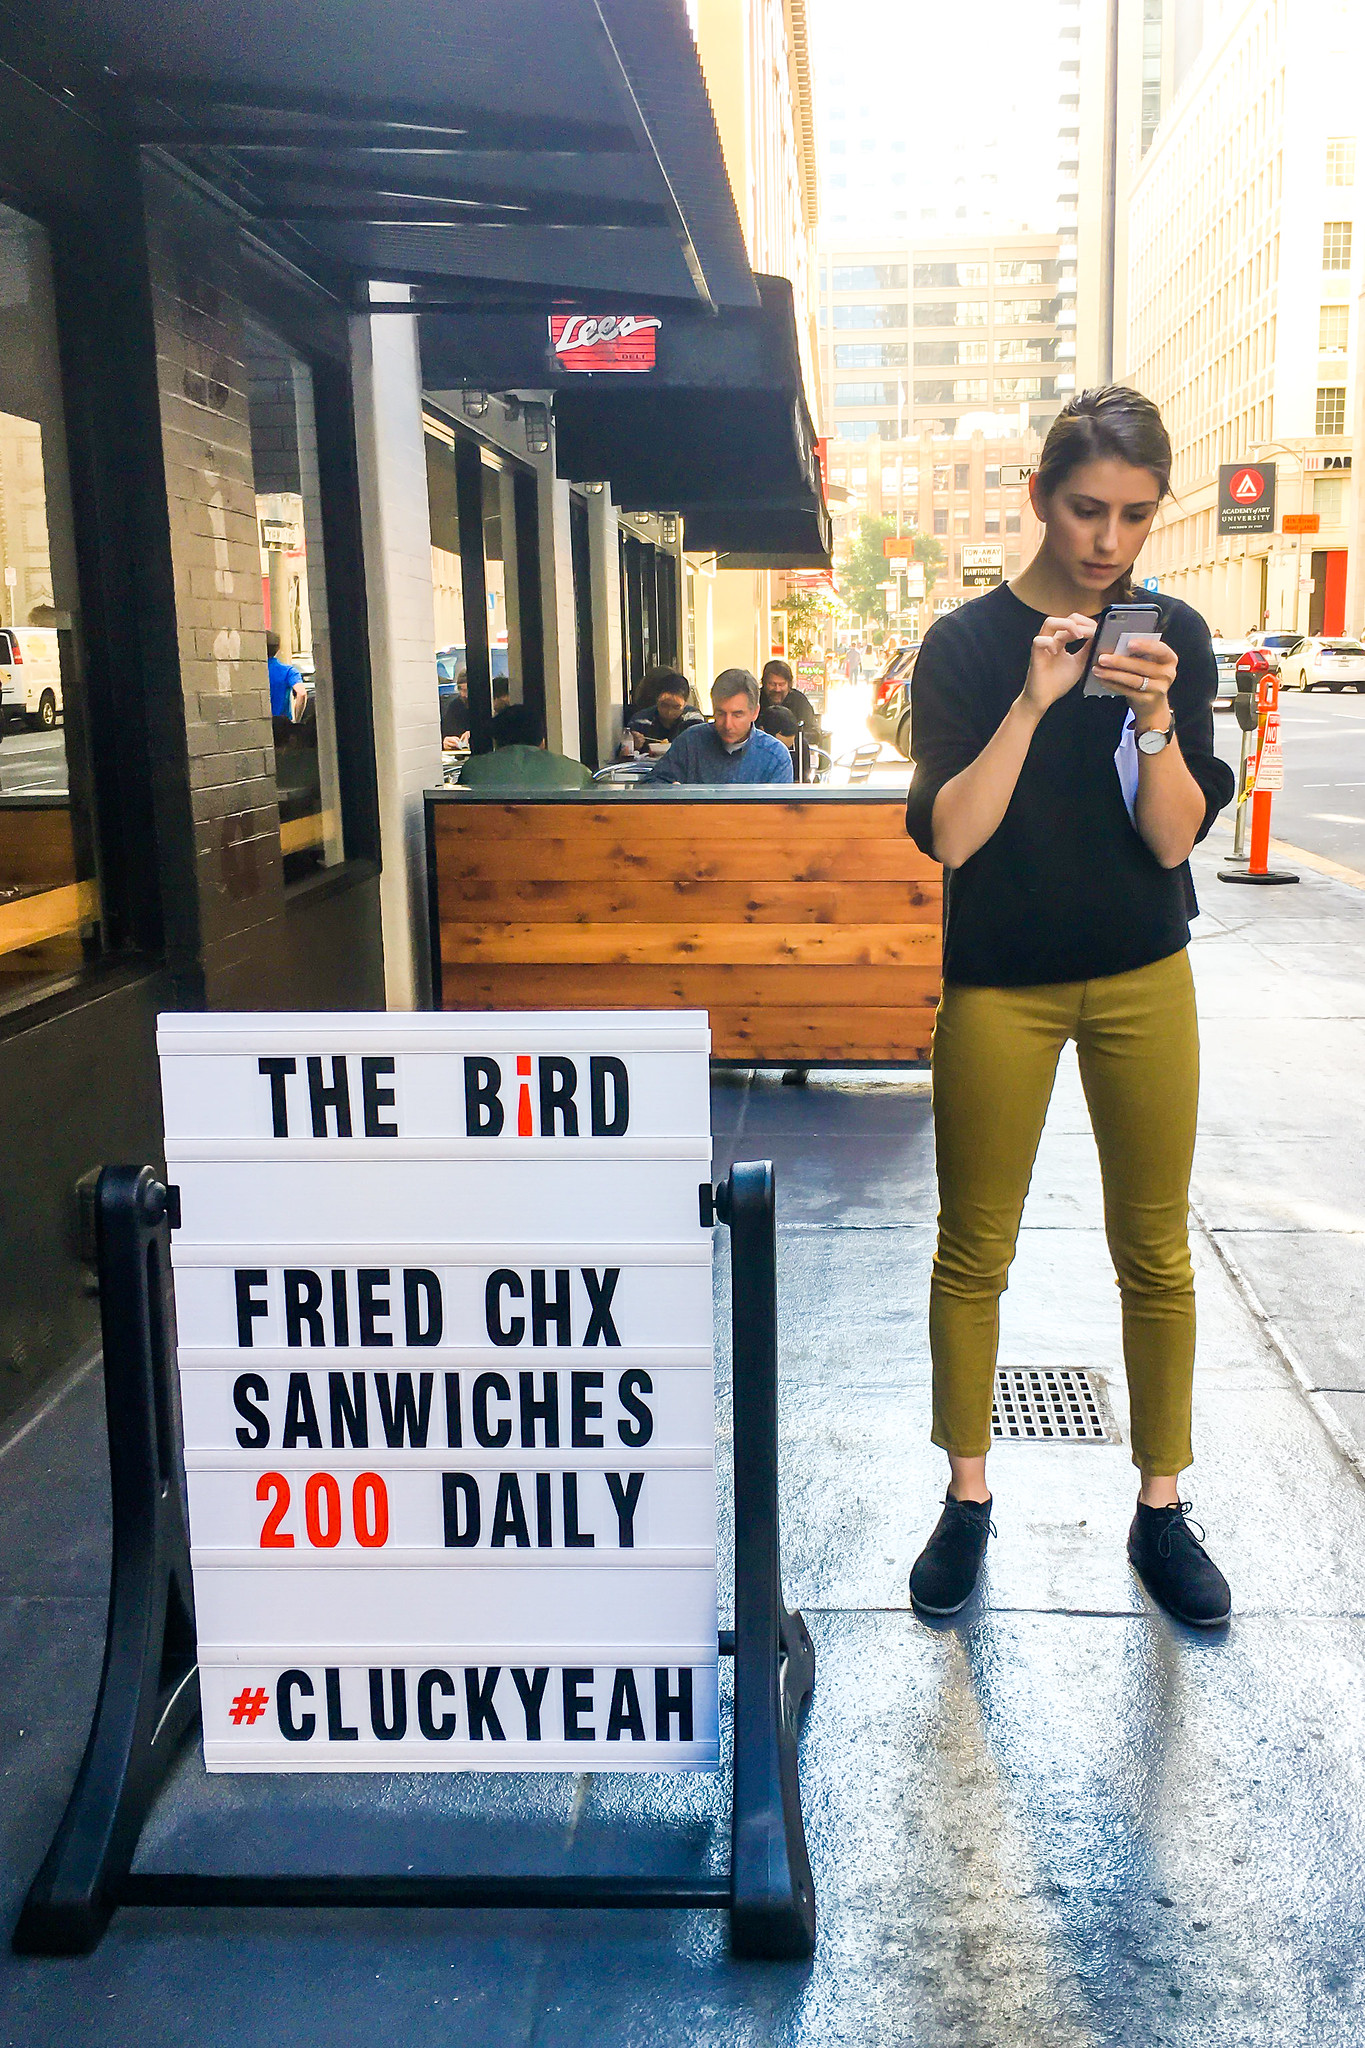 The Bird, Fried Chx Sandwiches 200 Daily, #Cluck Yeah